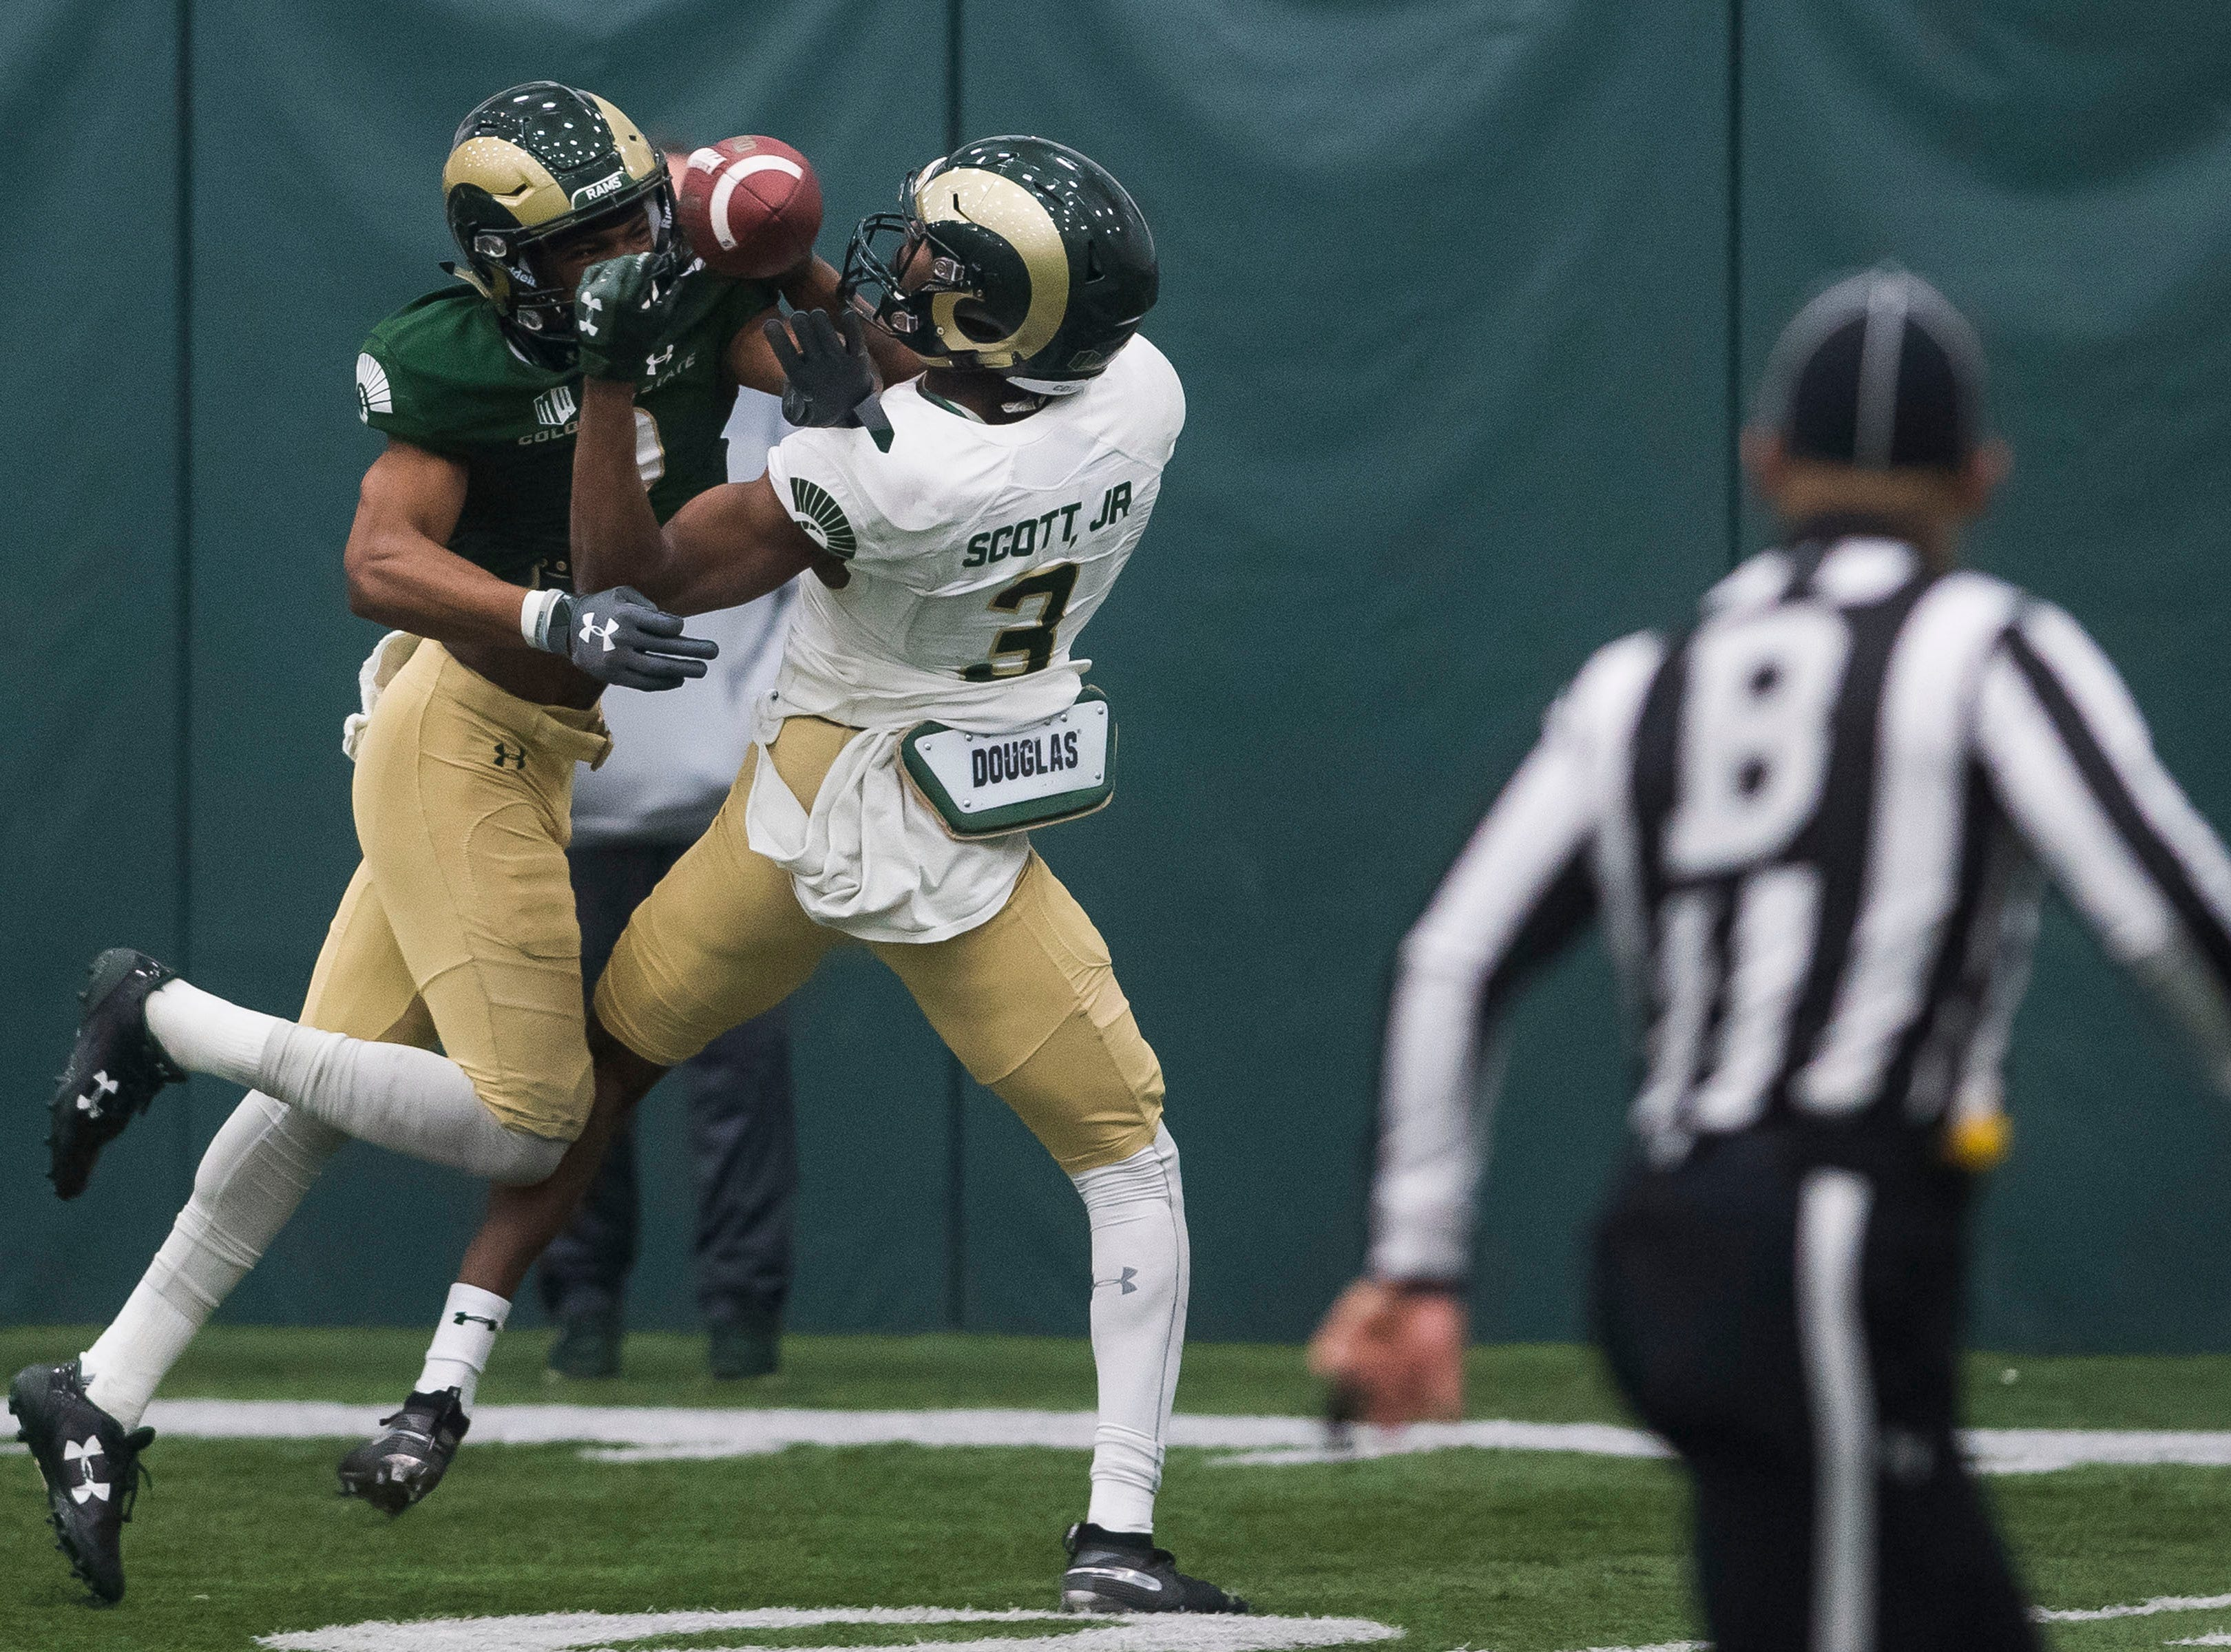 CSU junior corner Dajon Owens (2) defends a pass intended for sophomore receiver E.J. Scott (3) during CSU's Spring game on Thursday, March 14, 2019, at their indoor practice facility in Fort Collins, Colo.